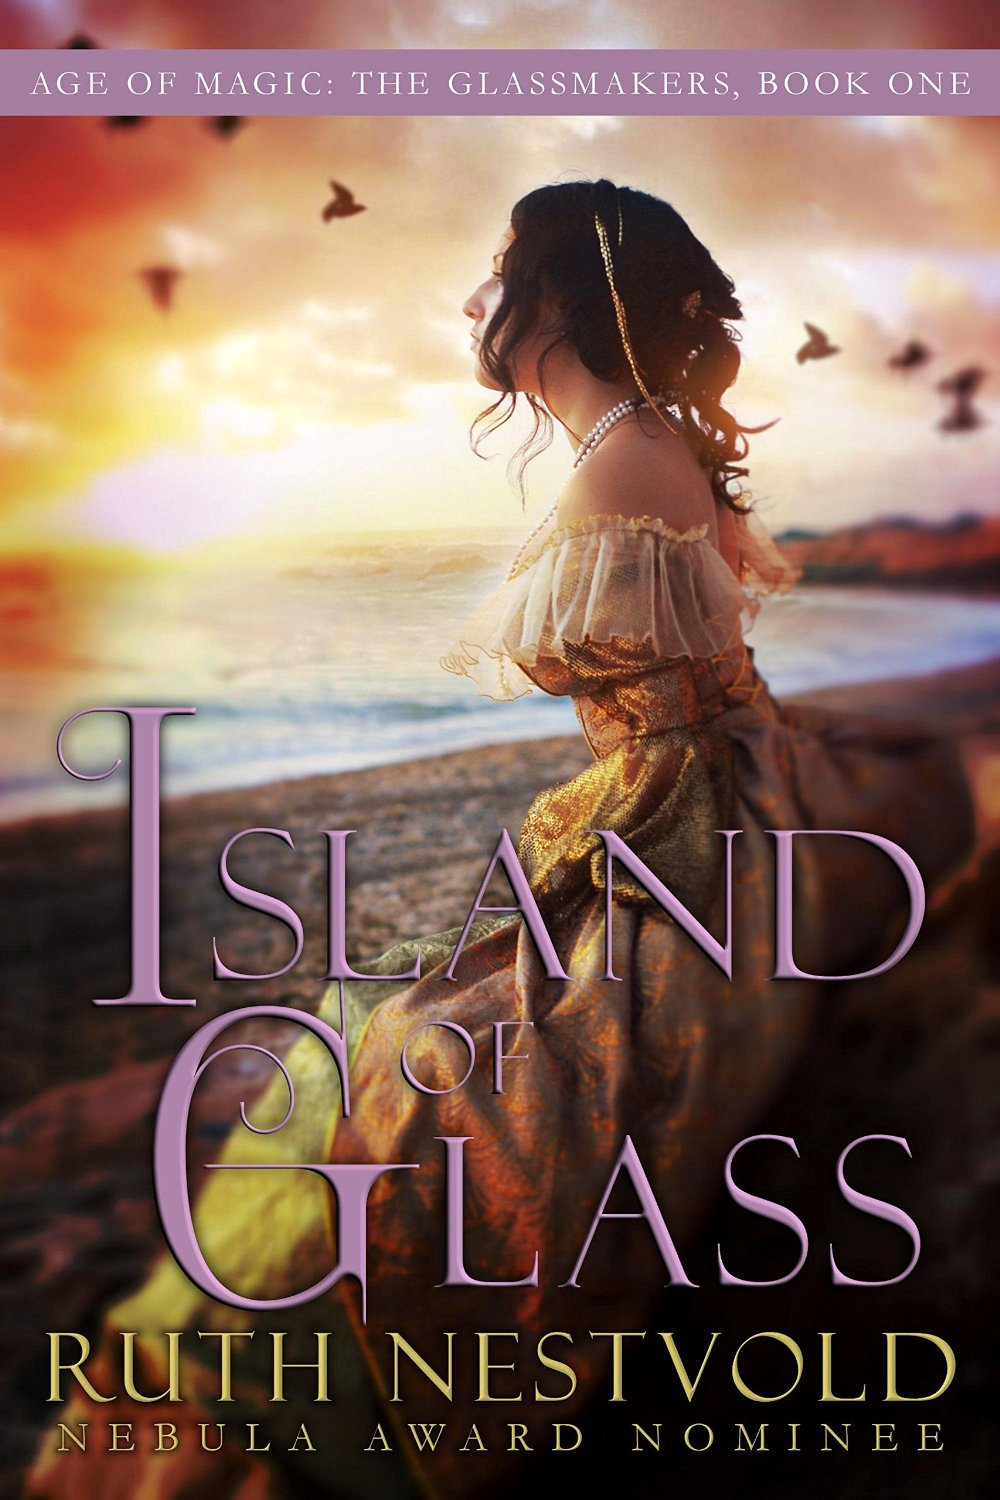 Speculative fiction showcase october 2014 island of glass by ruth nestvold fandeluxe Images